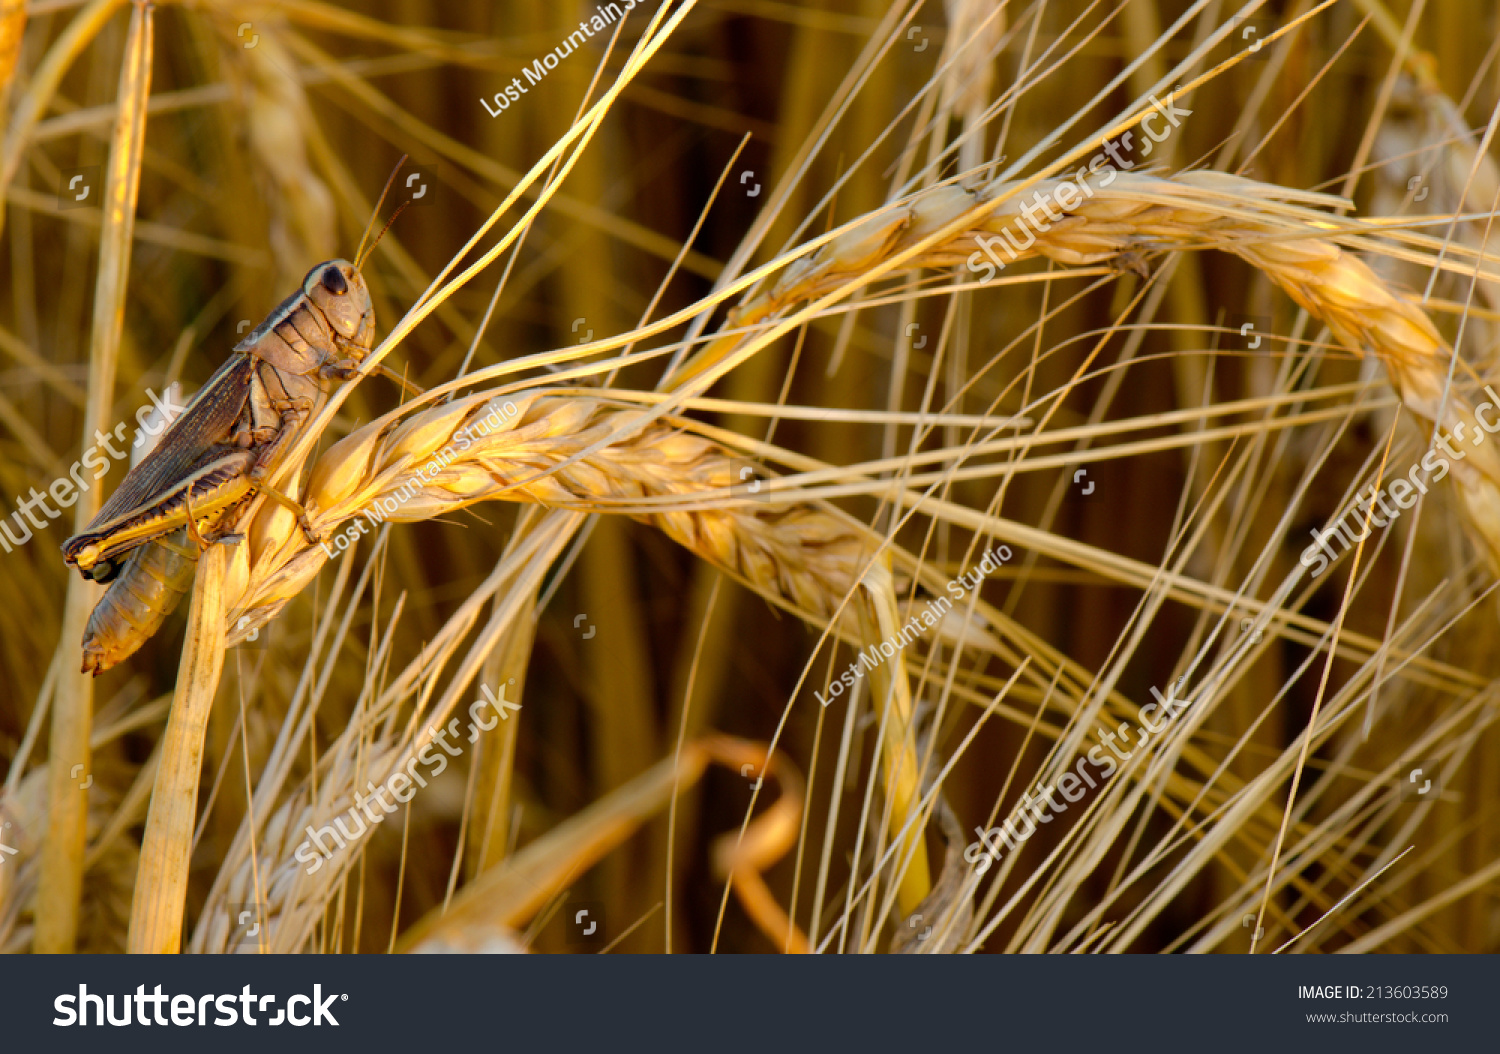 A grasshopper eating a wheat crop with vintage  like processing